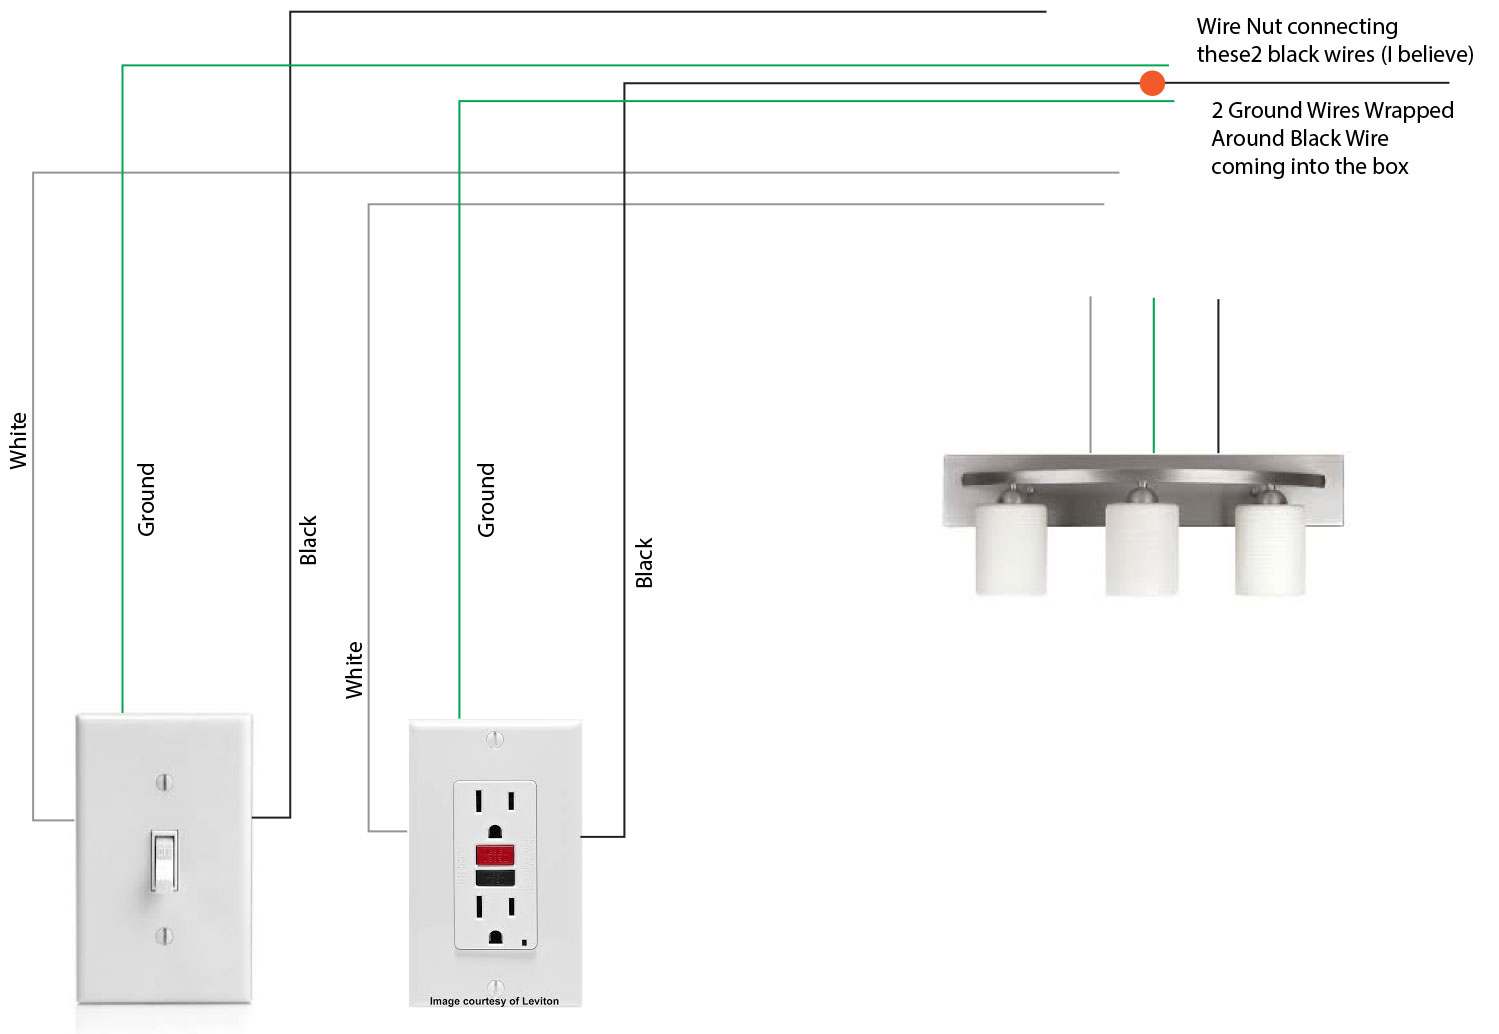 Lighting - Wiring A Light Fixture In Bathroom Attached To A Switch - Wiring A Gfci Outlet With A Light Switch Diagram